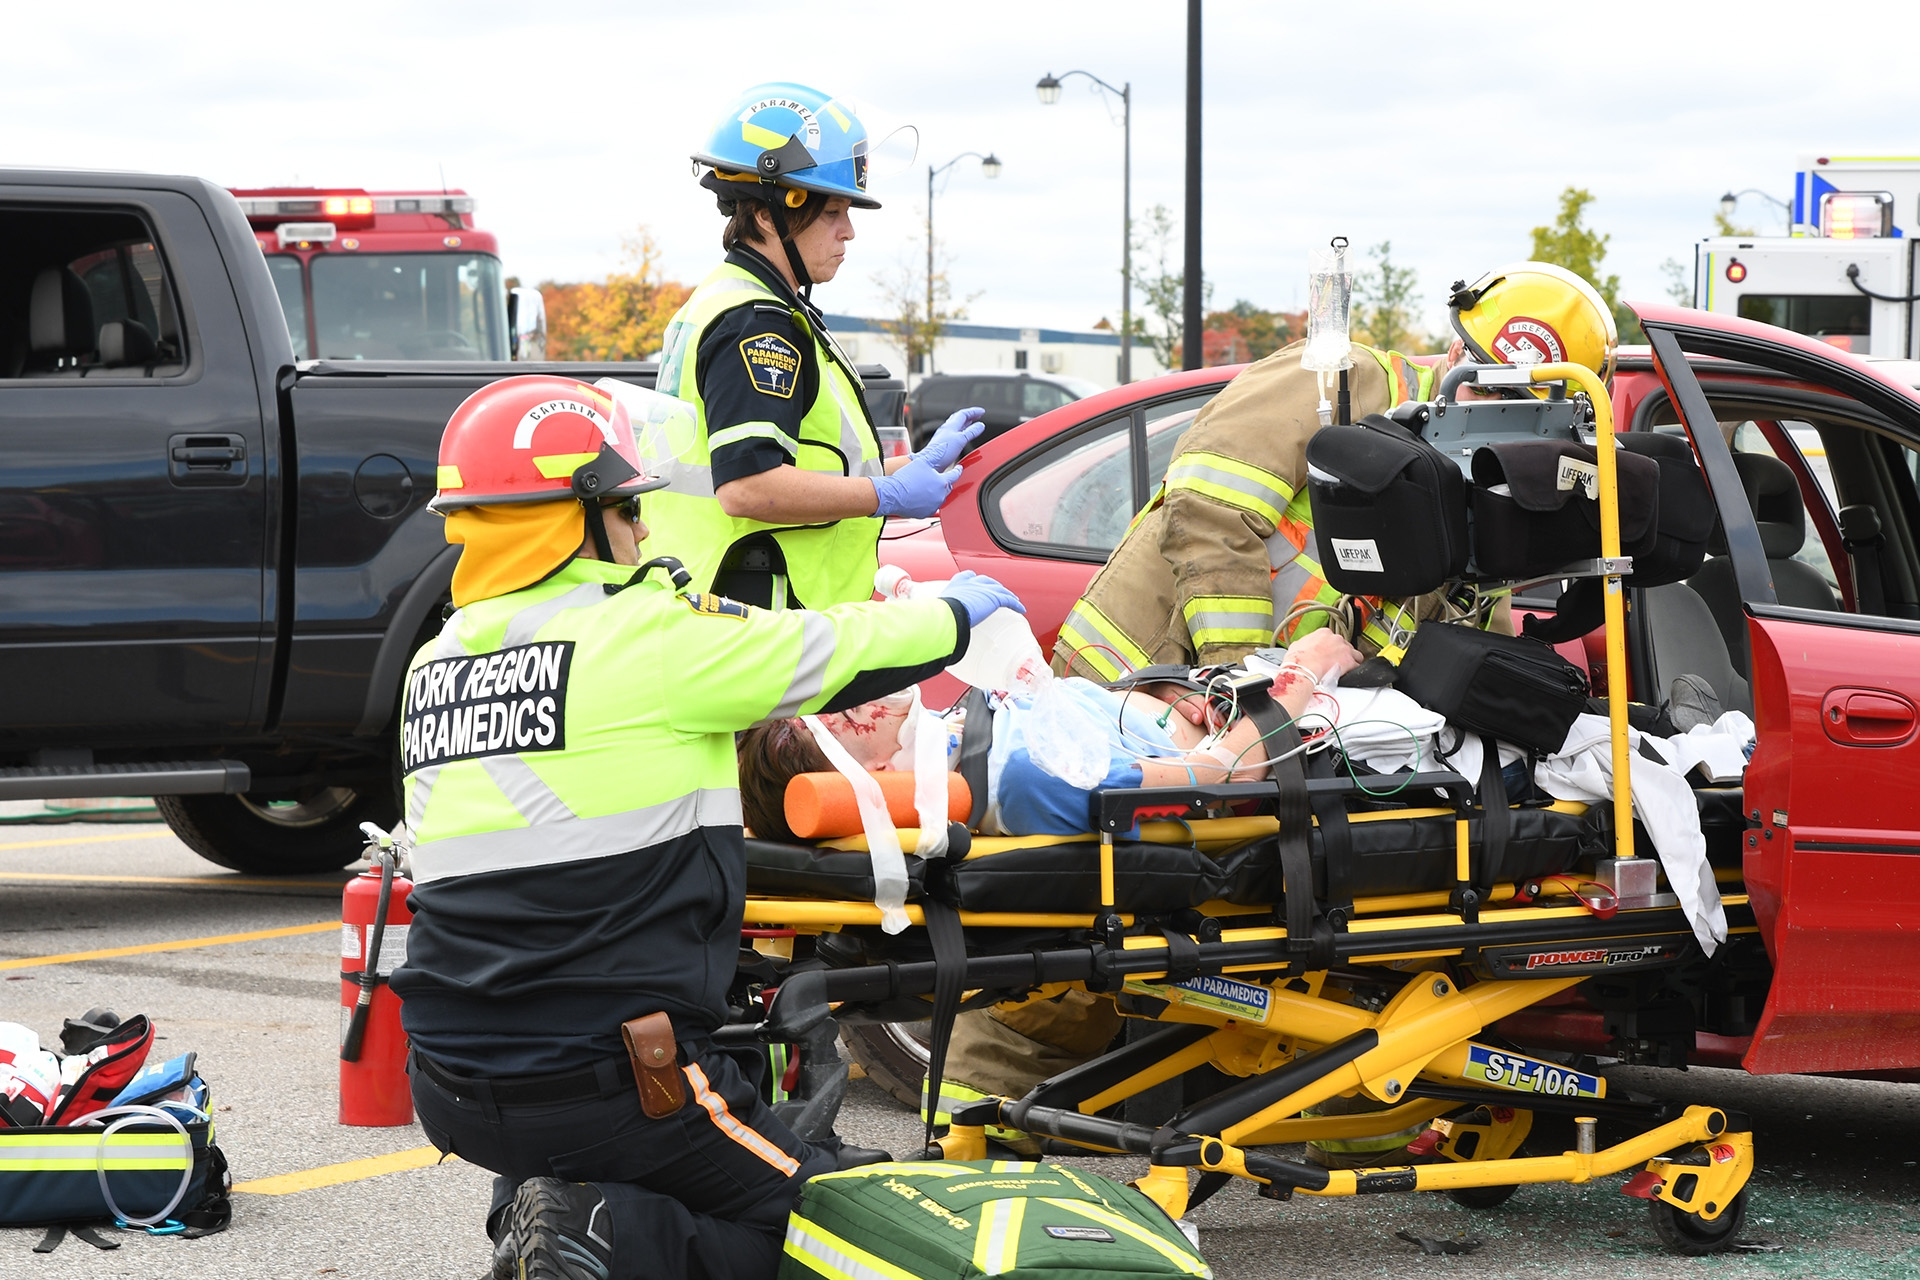 Paramedics working on an accident victim